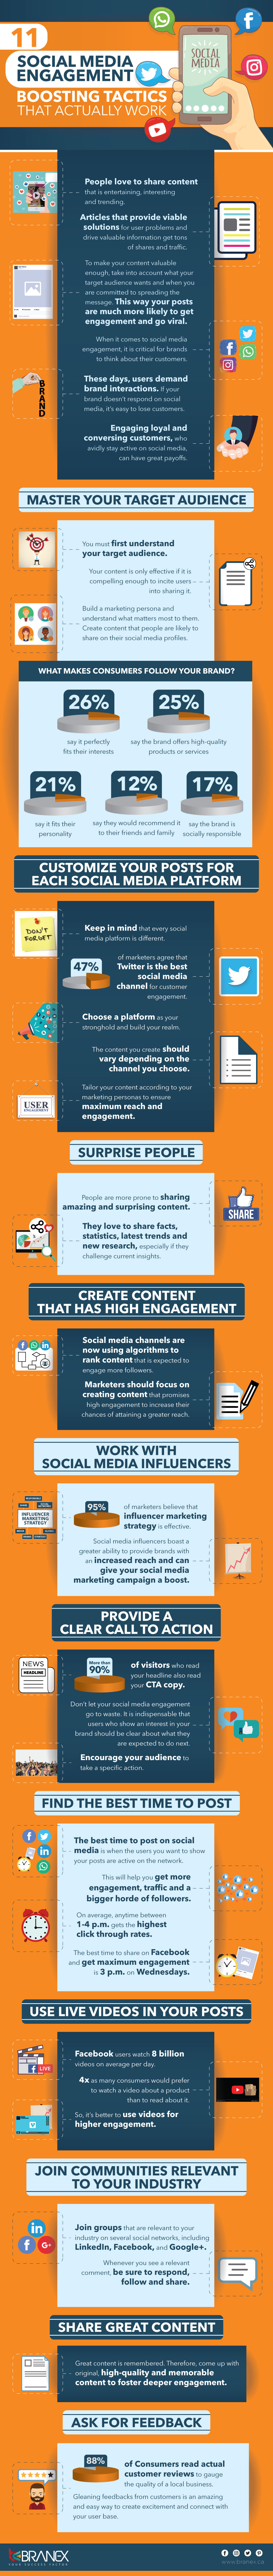 Creative Ways To Boost Social Media Engagement